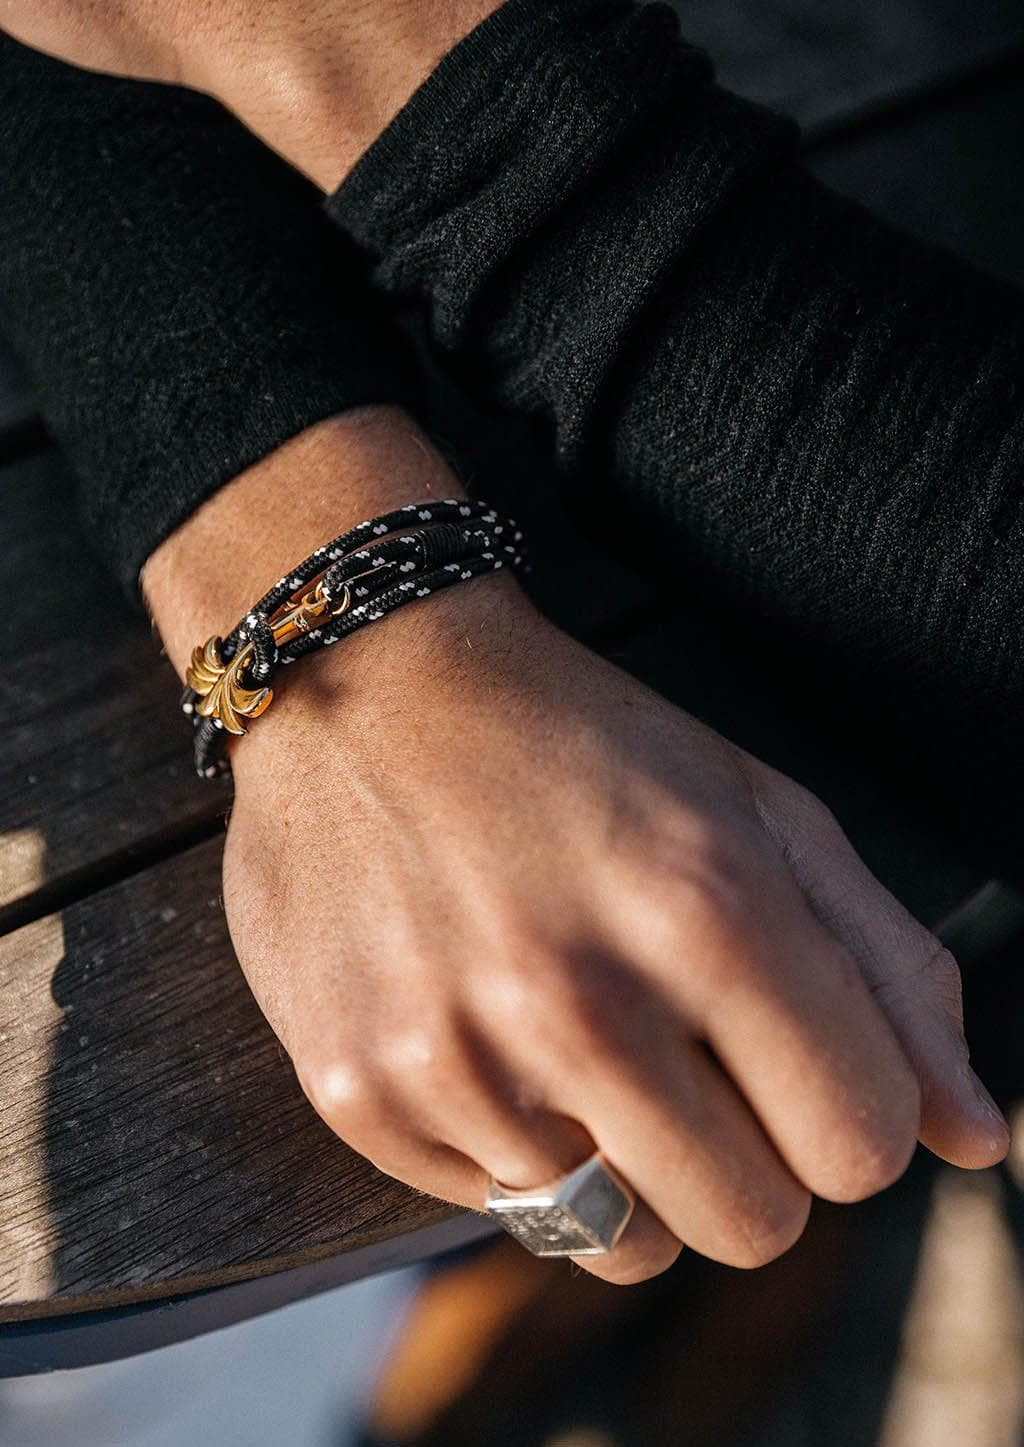 Trophy - Triple - Season two Palm anchor bracelet with black and white nylon band. With black sweater.